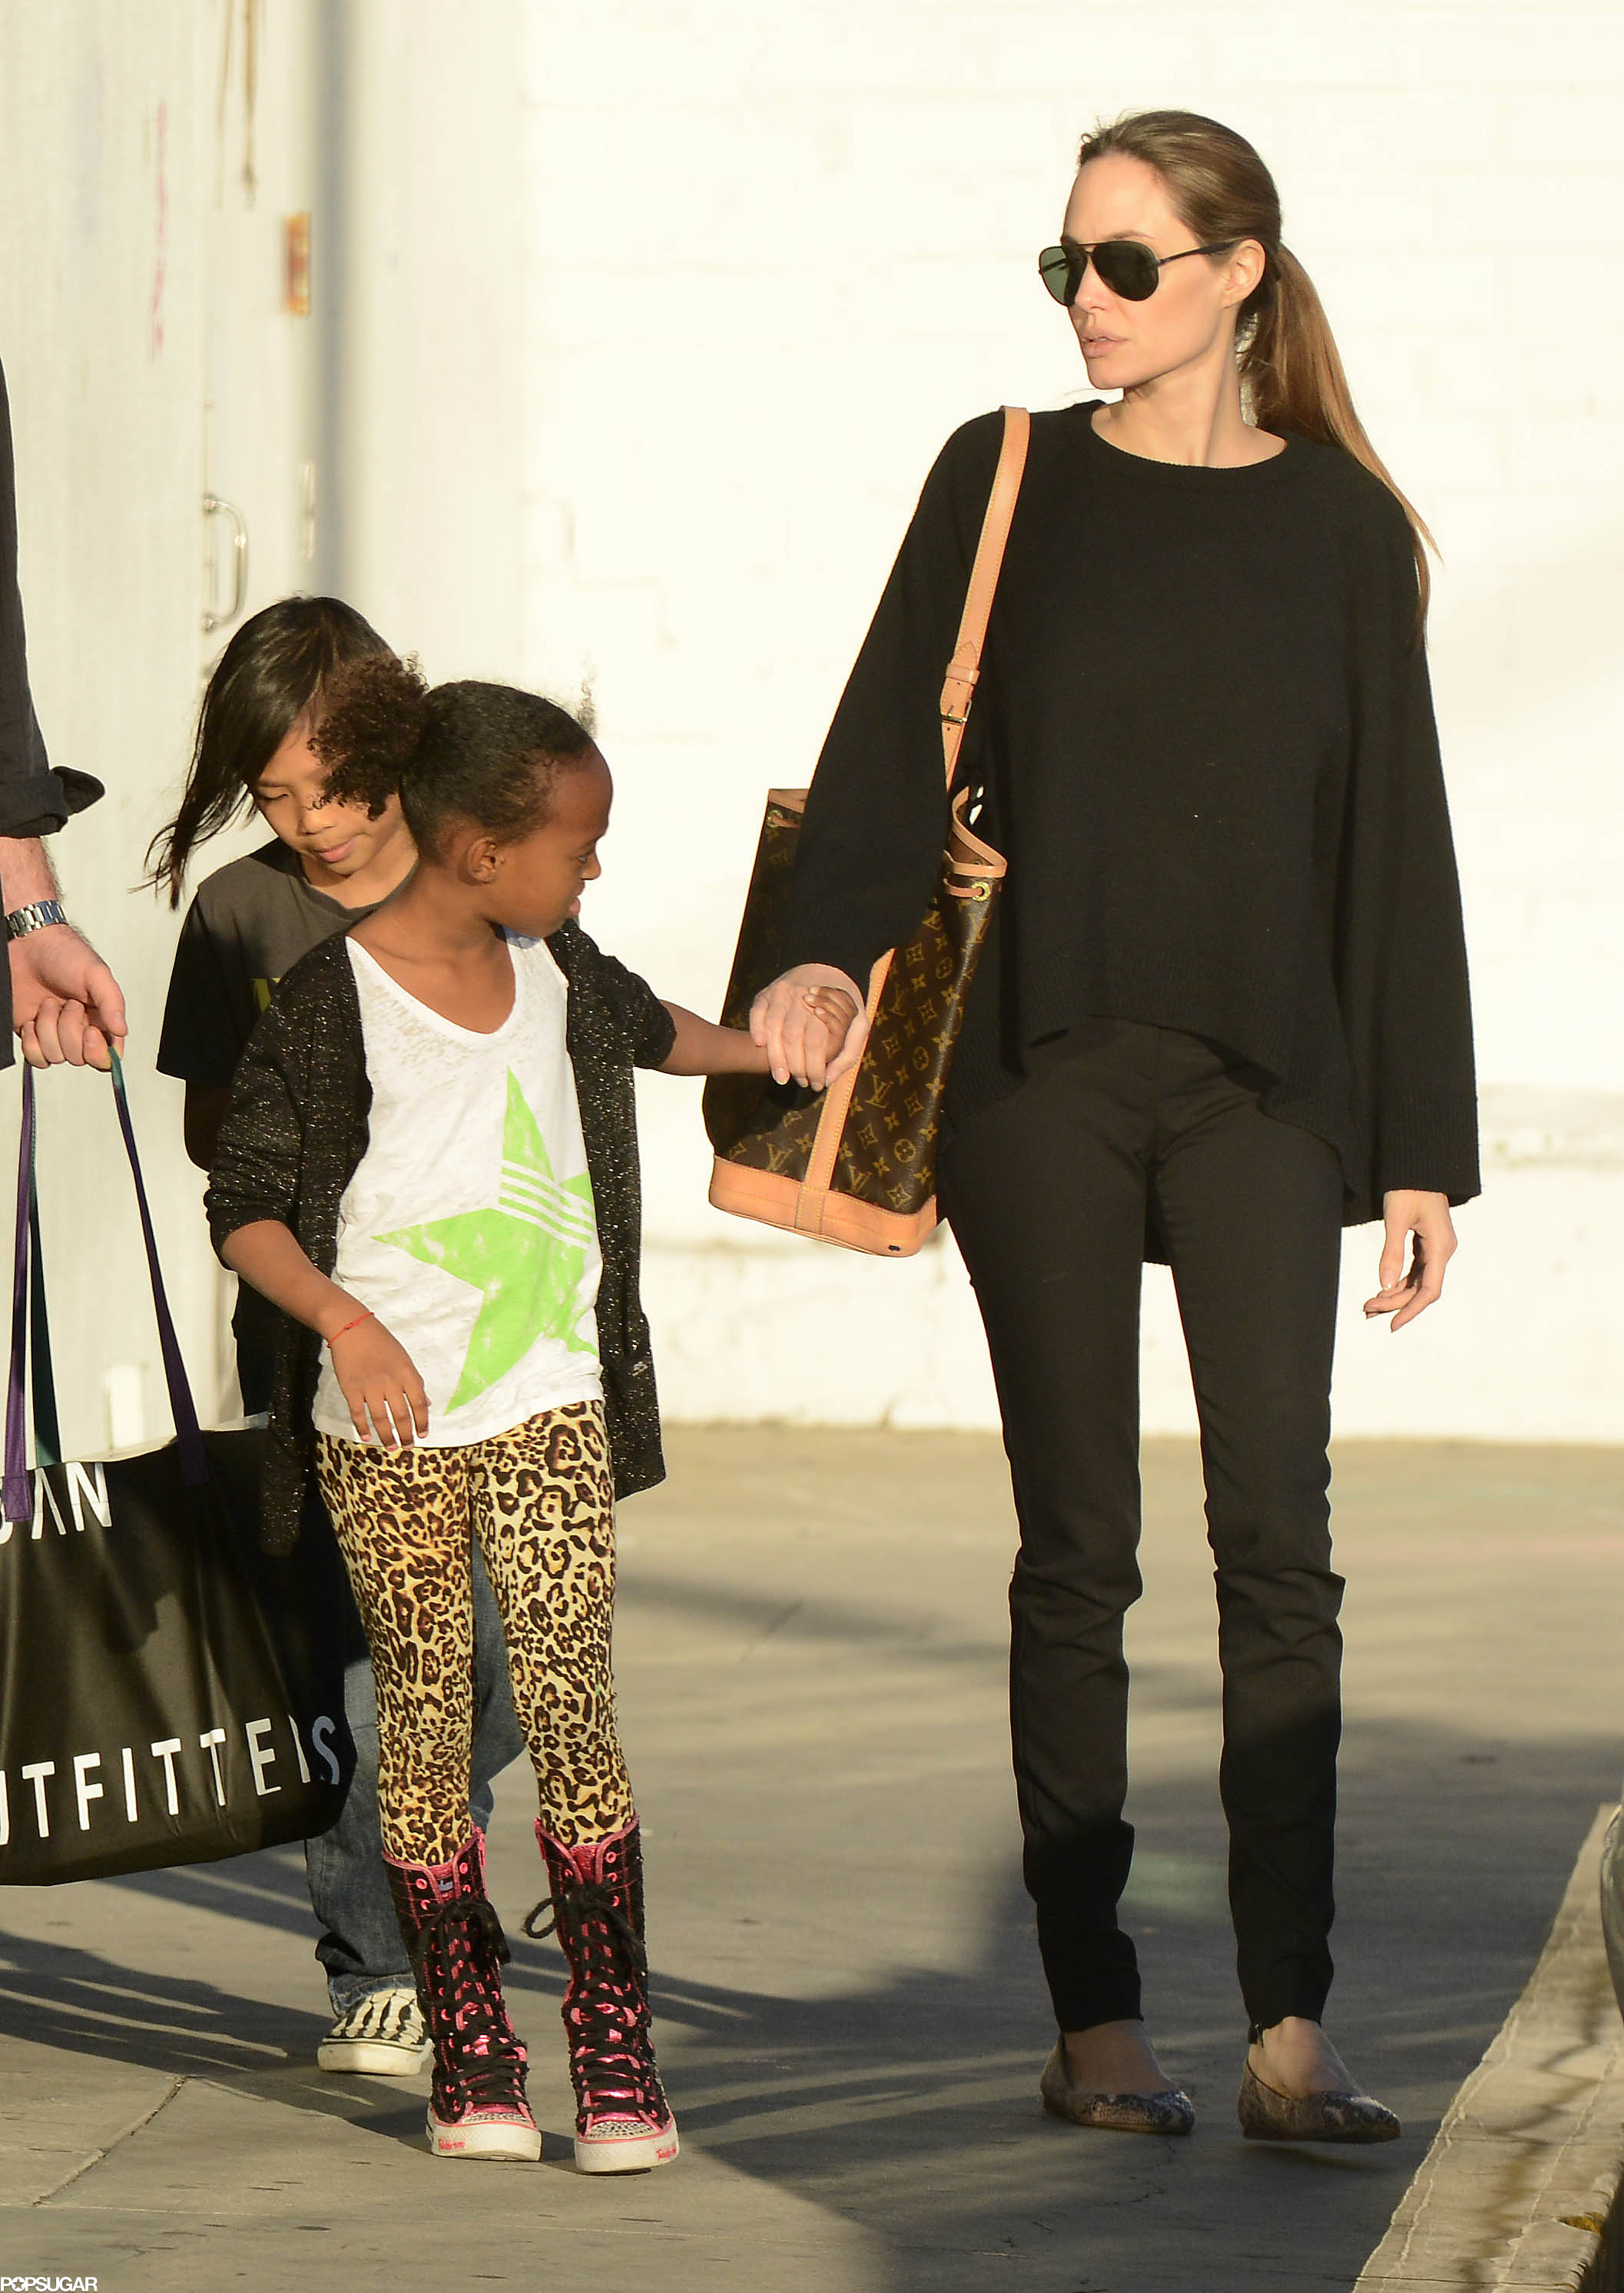 Angelina Jolie took her kids Zahara and Pax on a shopping trip to Urb